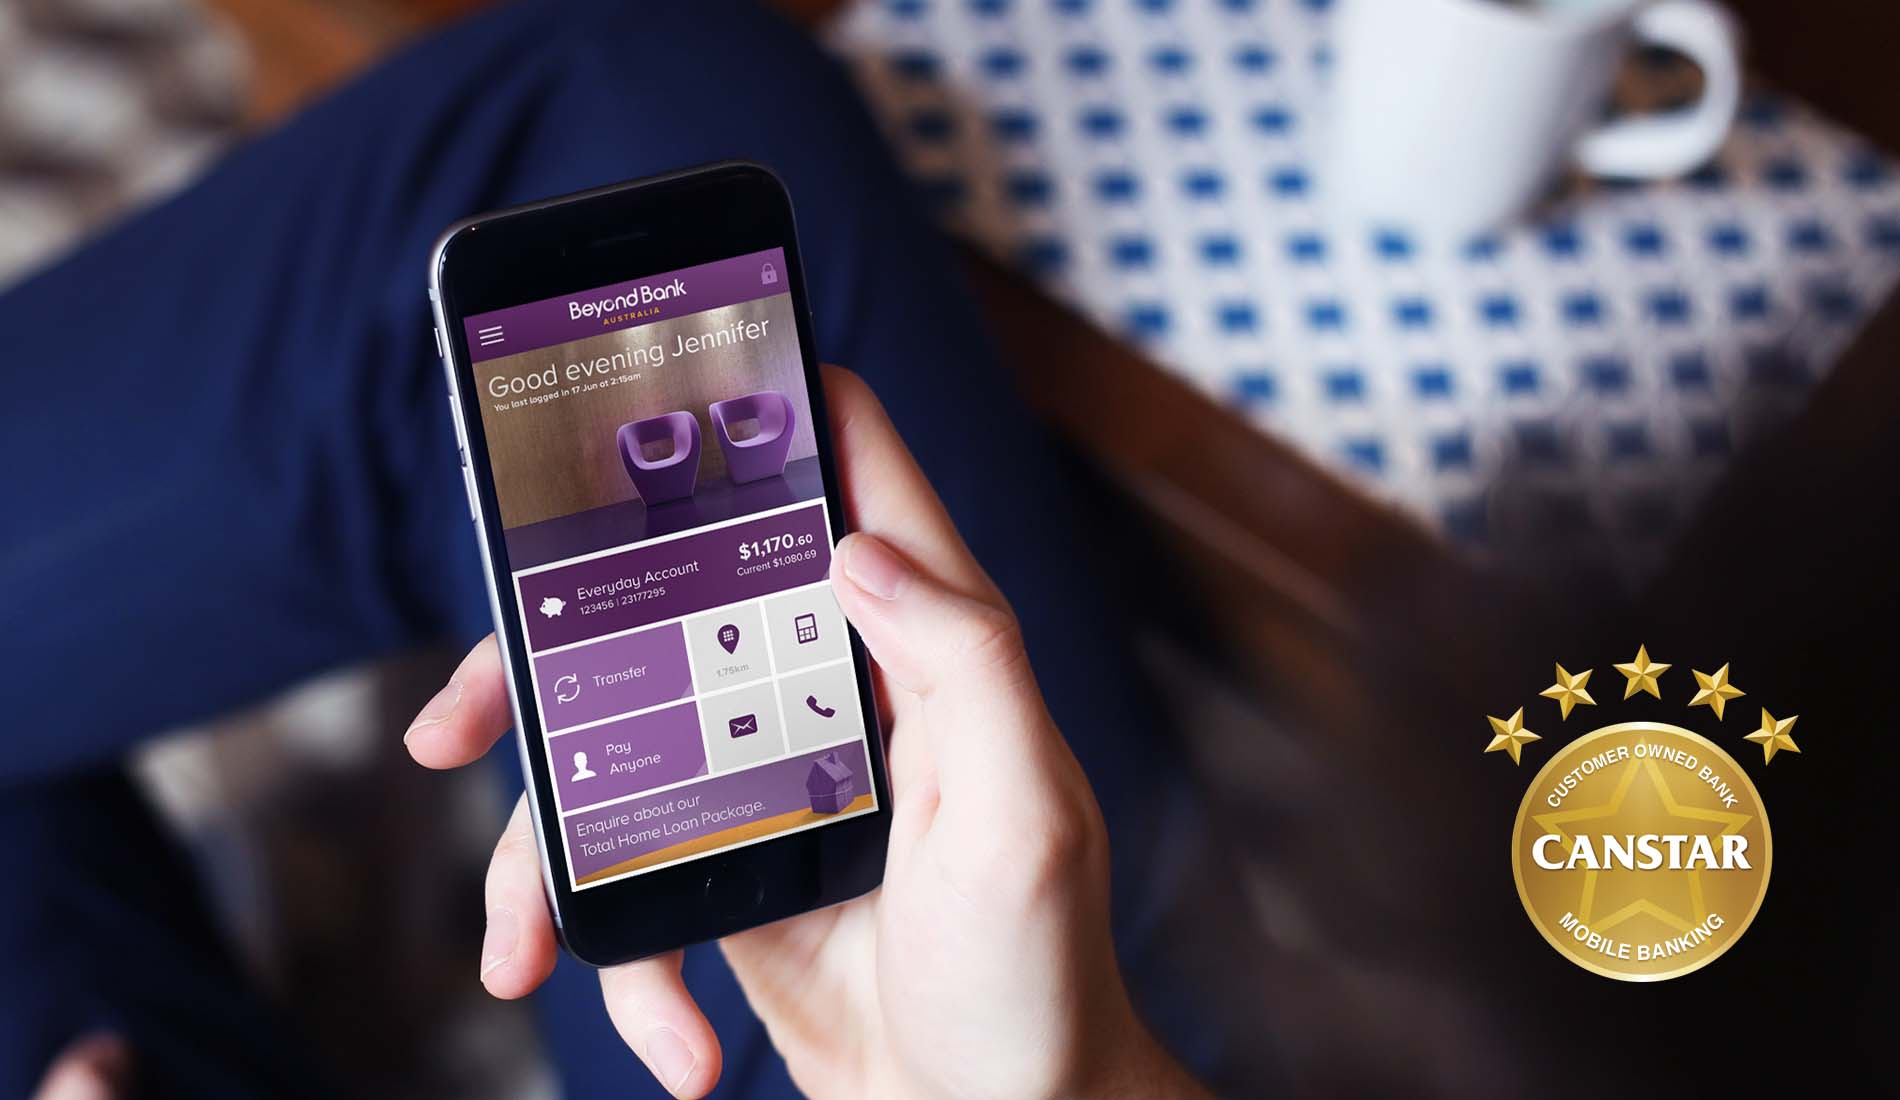 Beyond Bank mobile banking app wins CANSTAR award